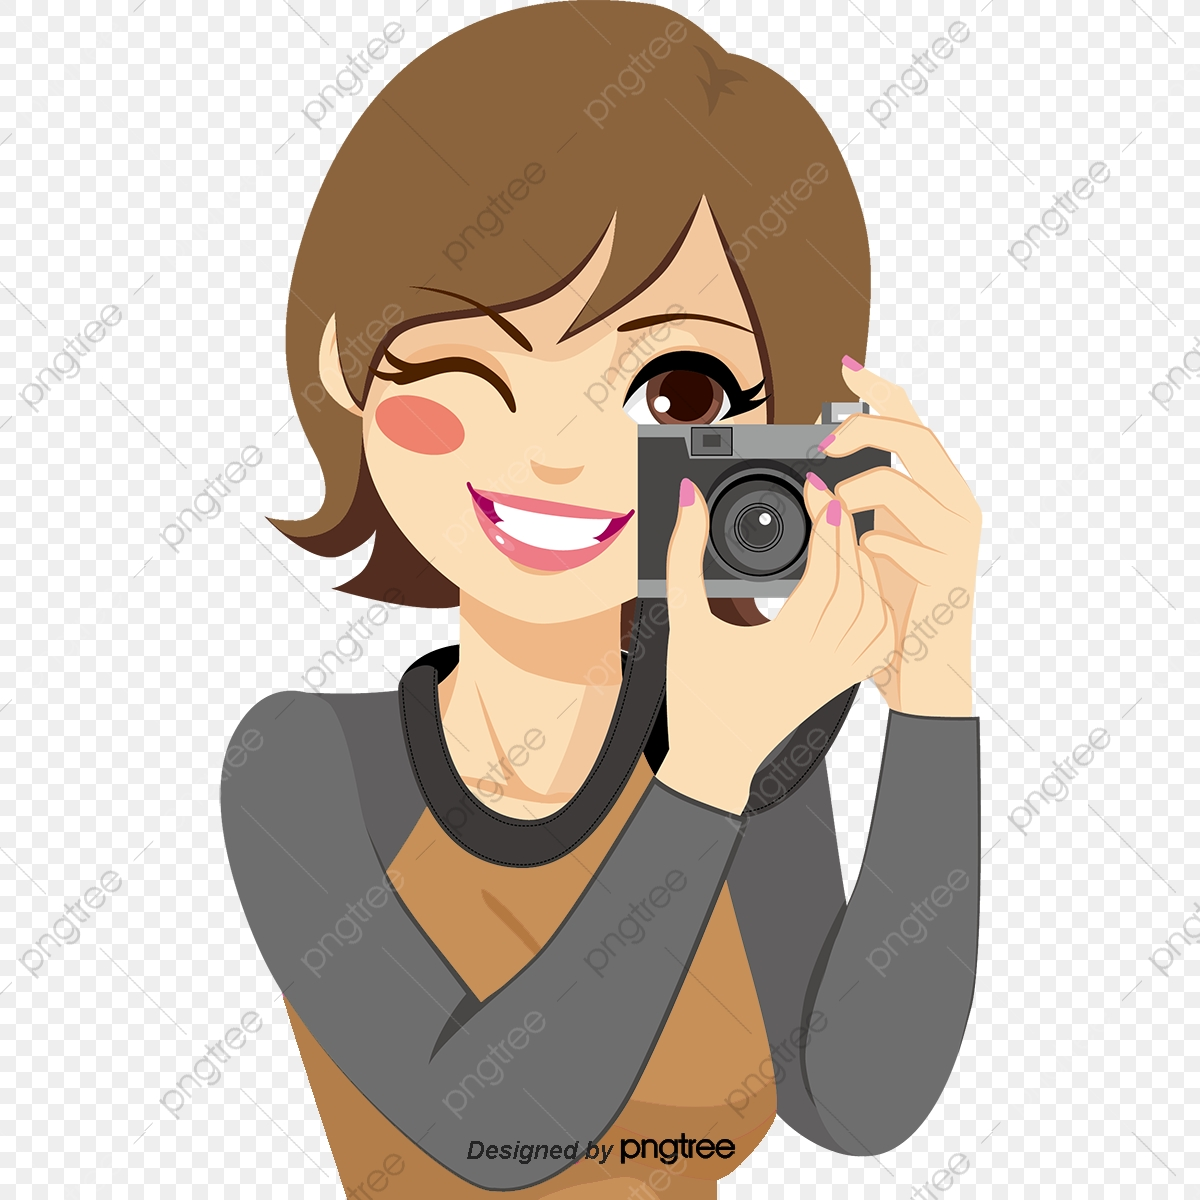 photographic vector png free photographer photograph photographer logo vector images pngtree https pngtree com freepng vector cartoon photographer 2921359 html